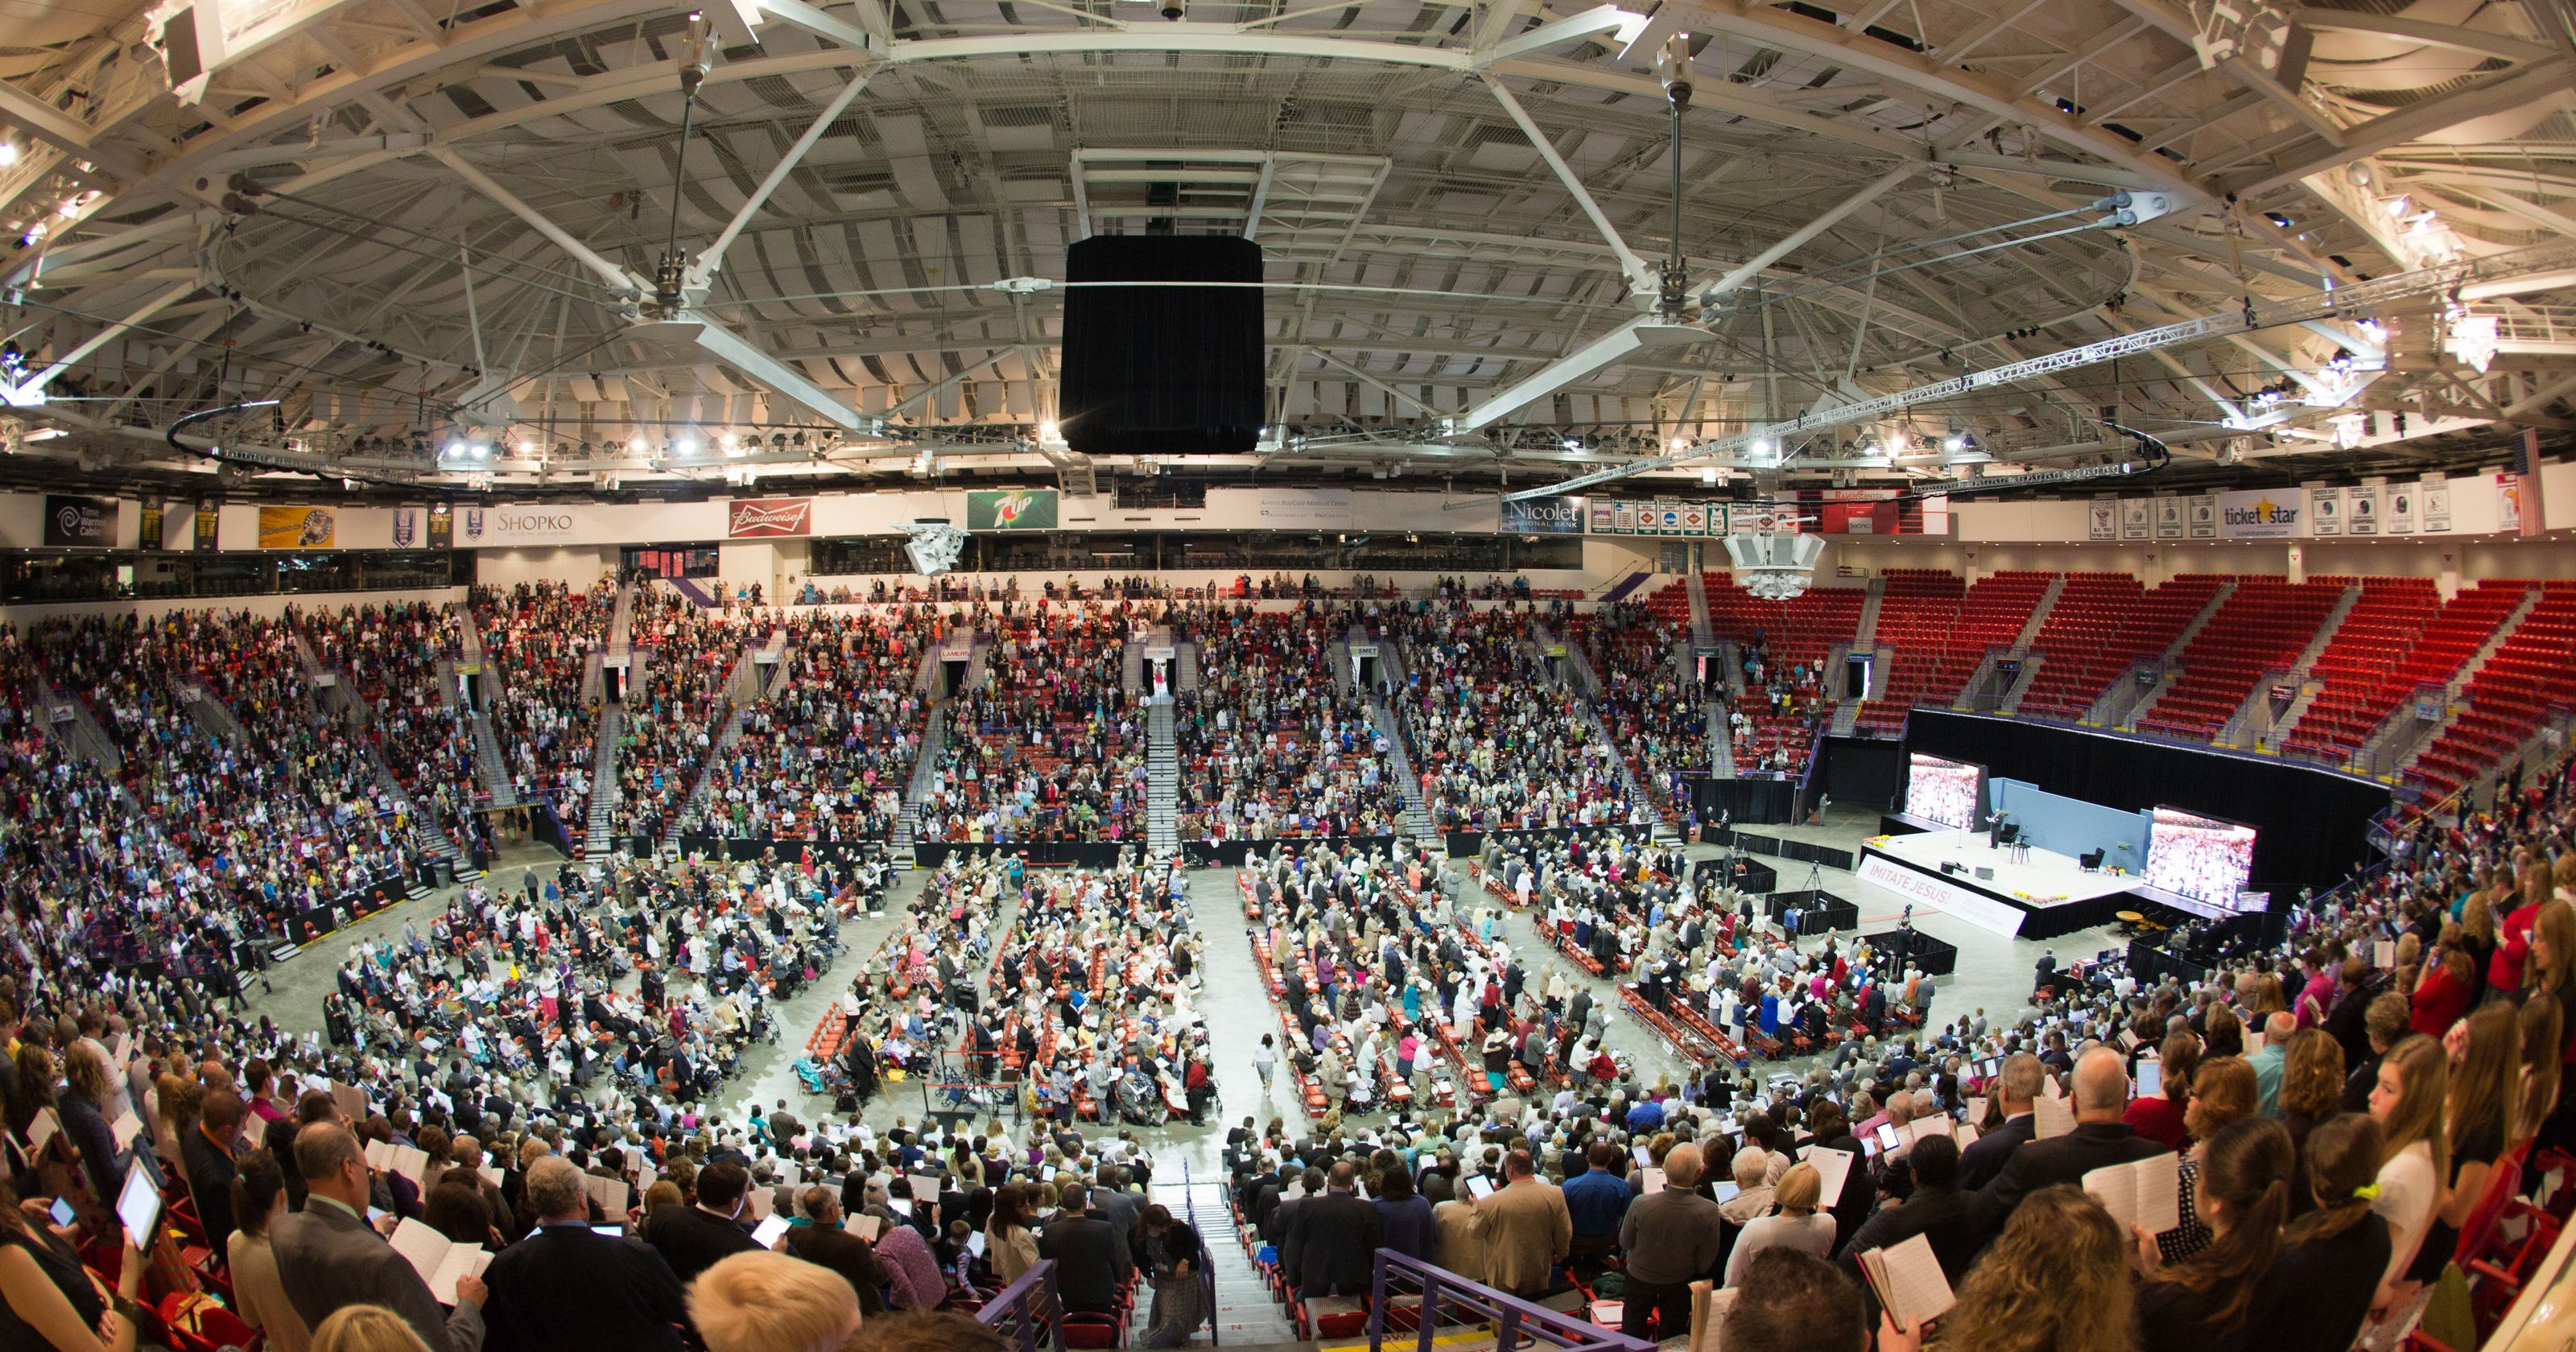 7,000 expected for Jehovah's Witnesses convention